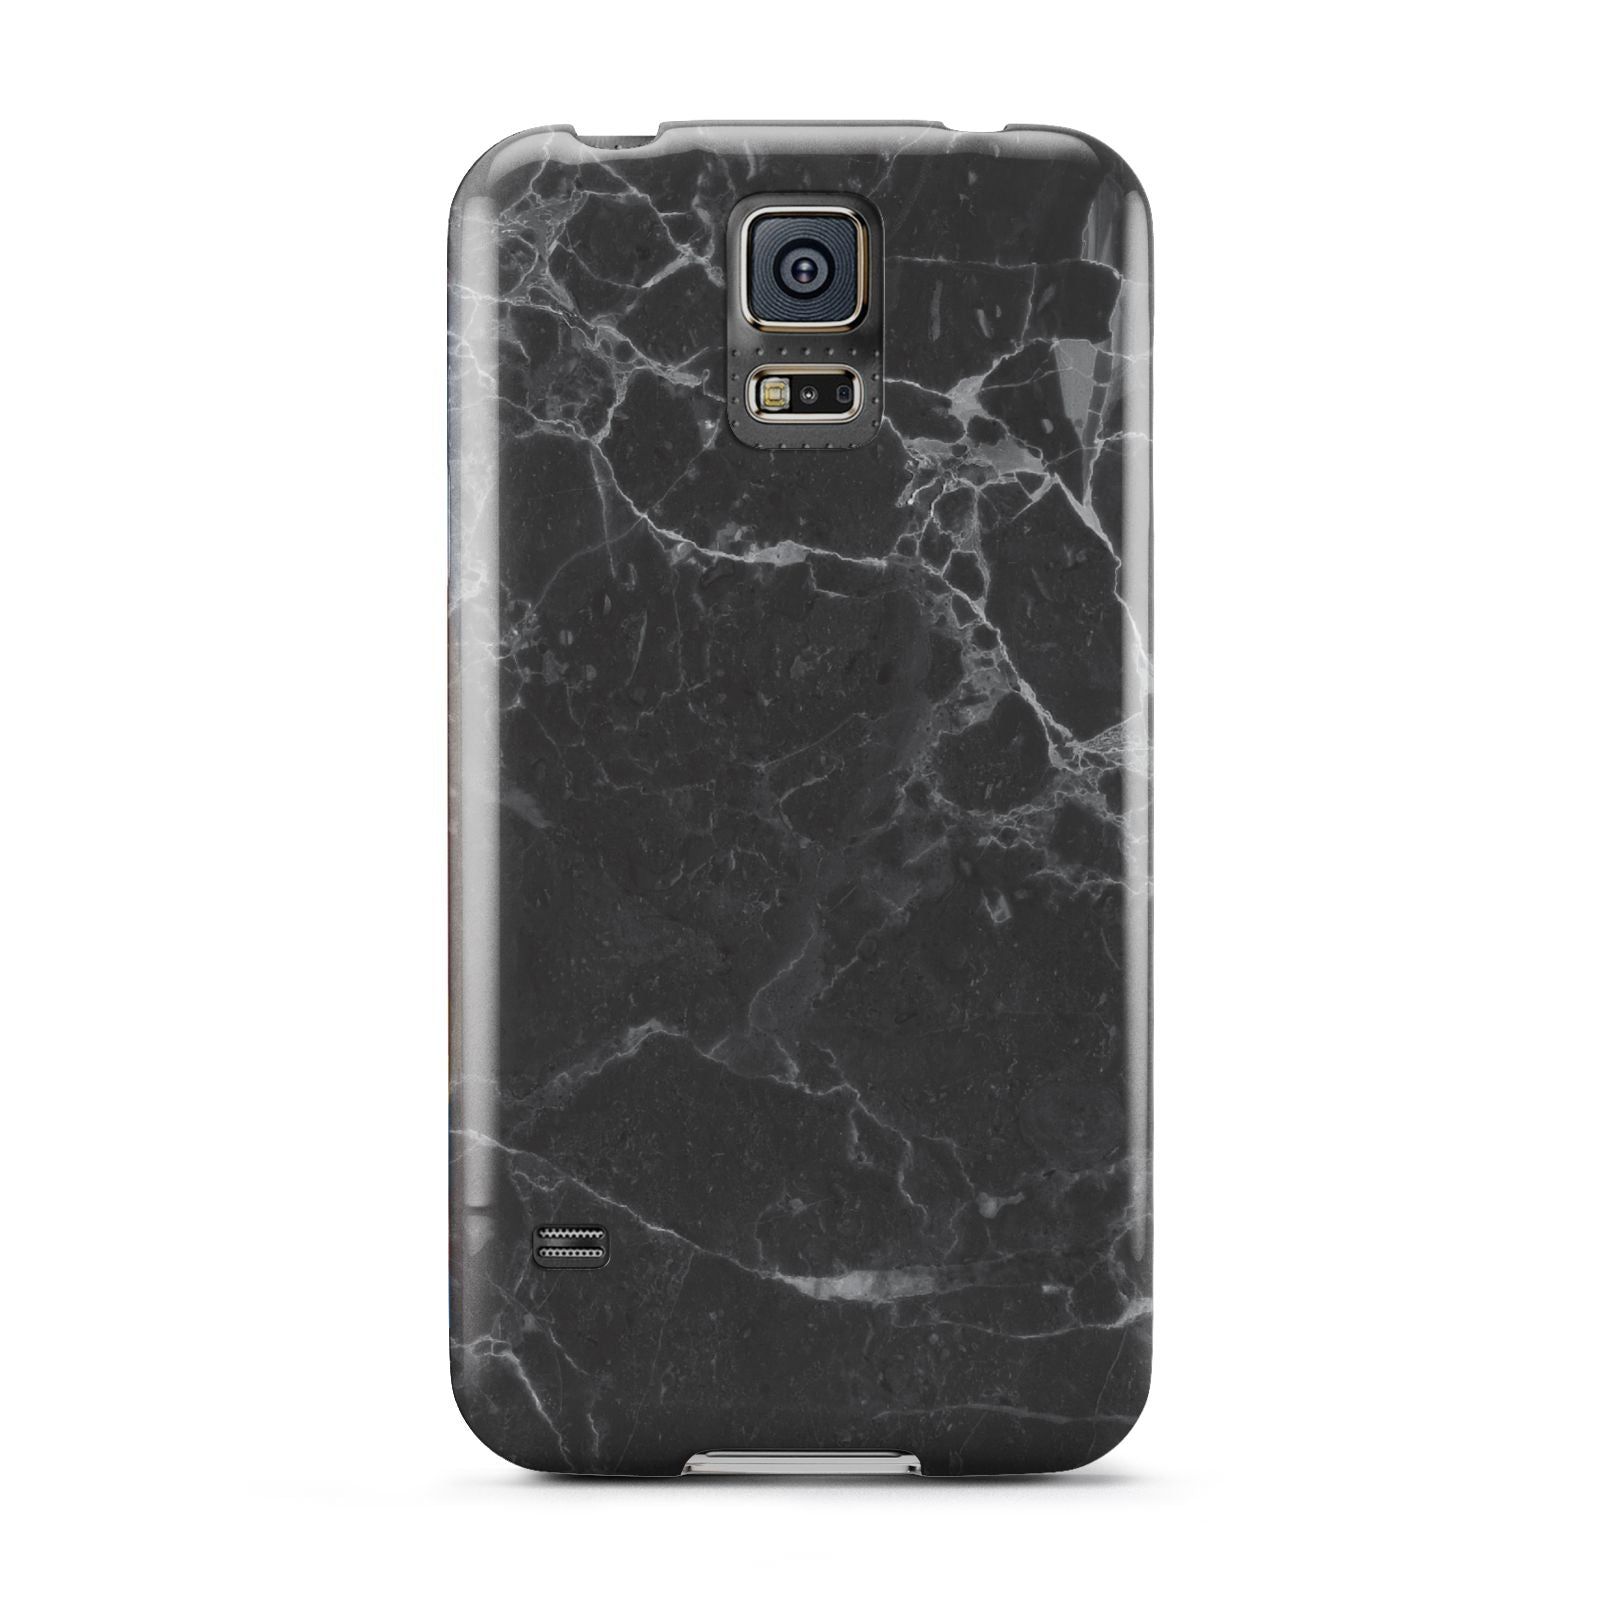 Faux Marble Effect Black Samsung Galaxy S5 Case